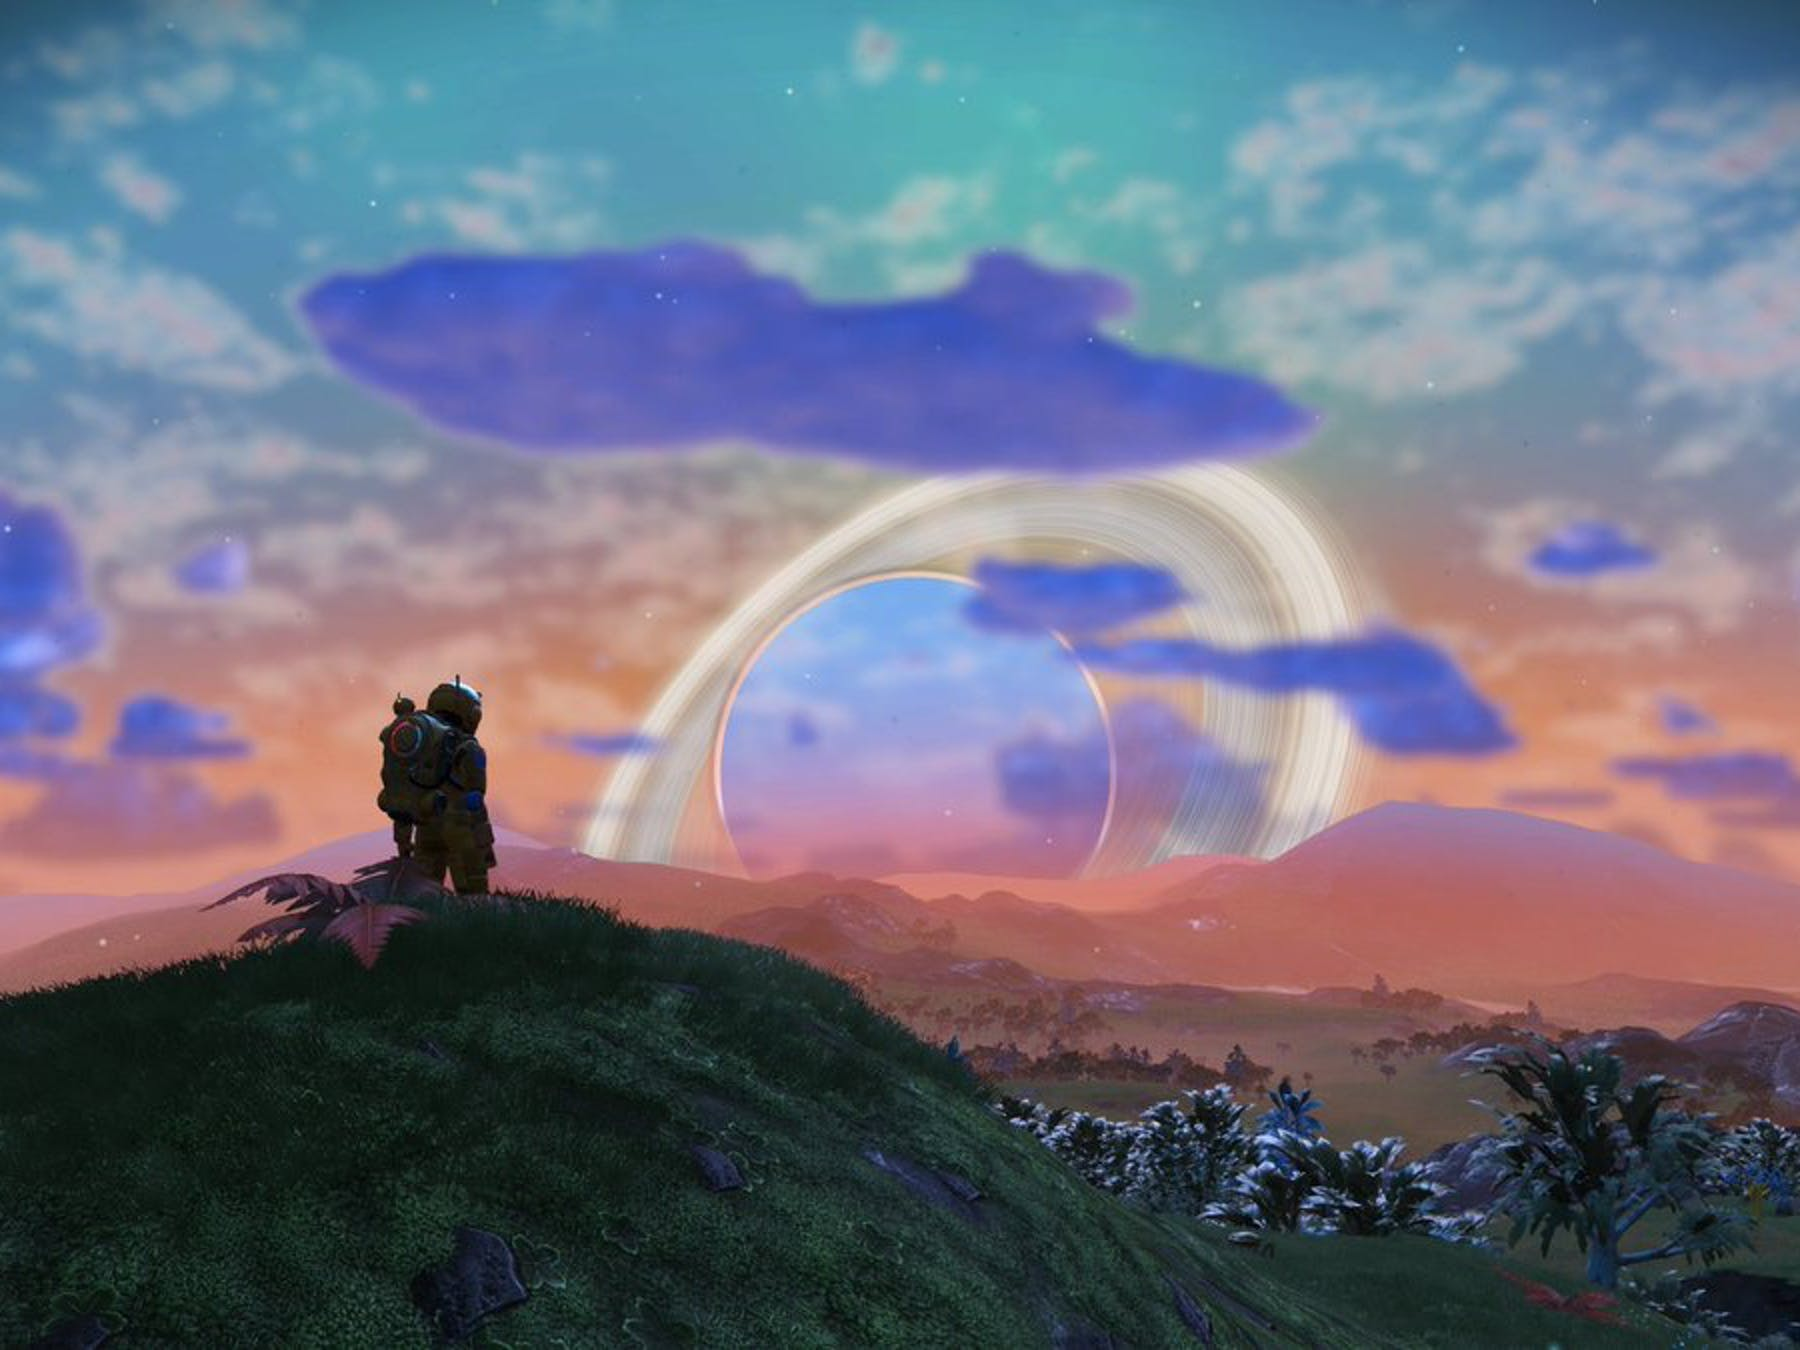 The new 'No Man's Sky' update makes the game so much better.